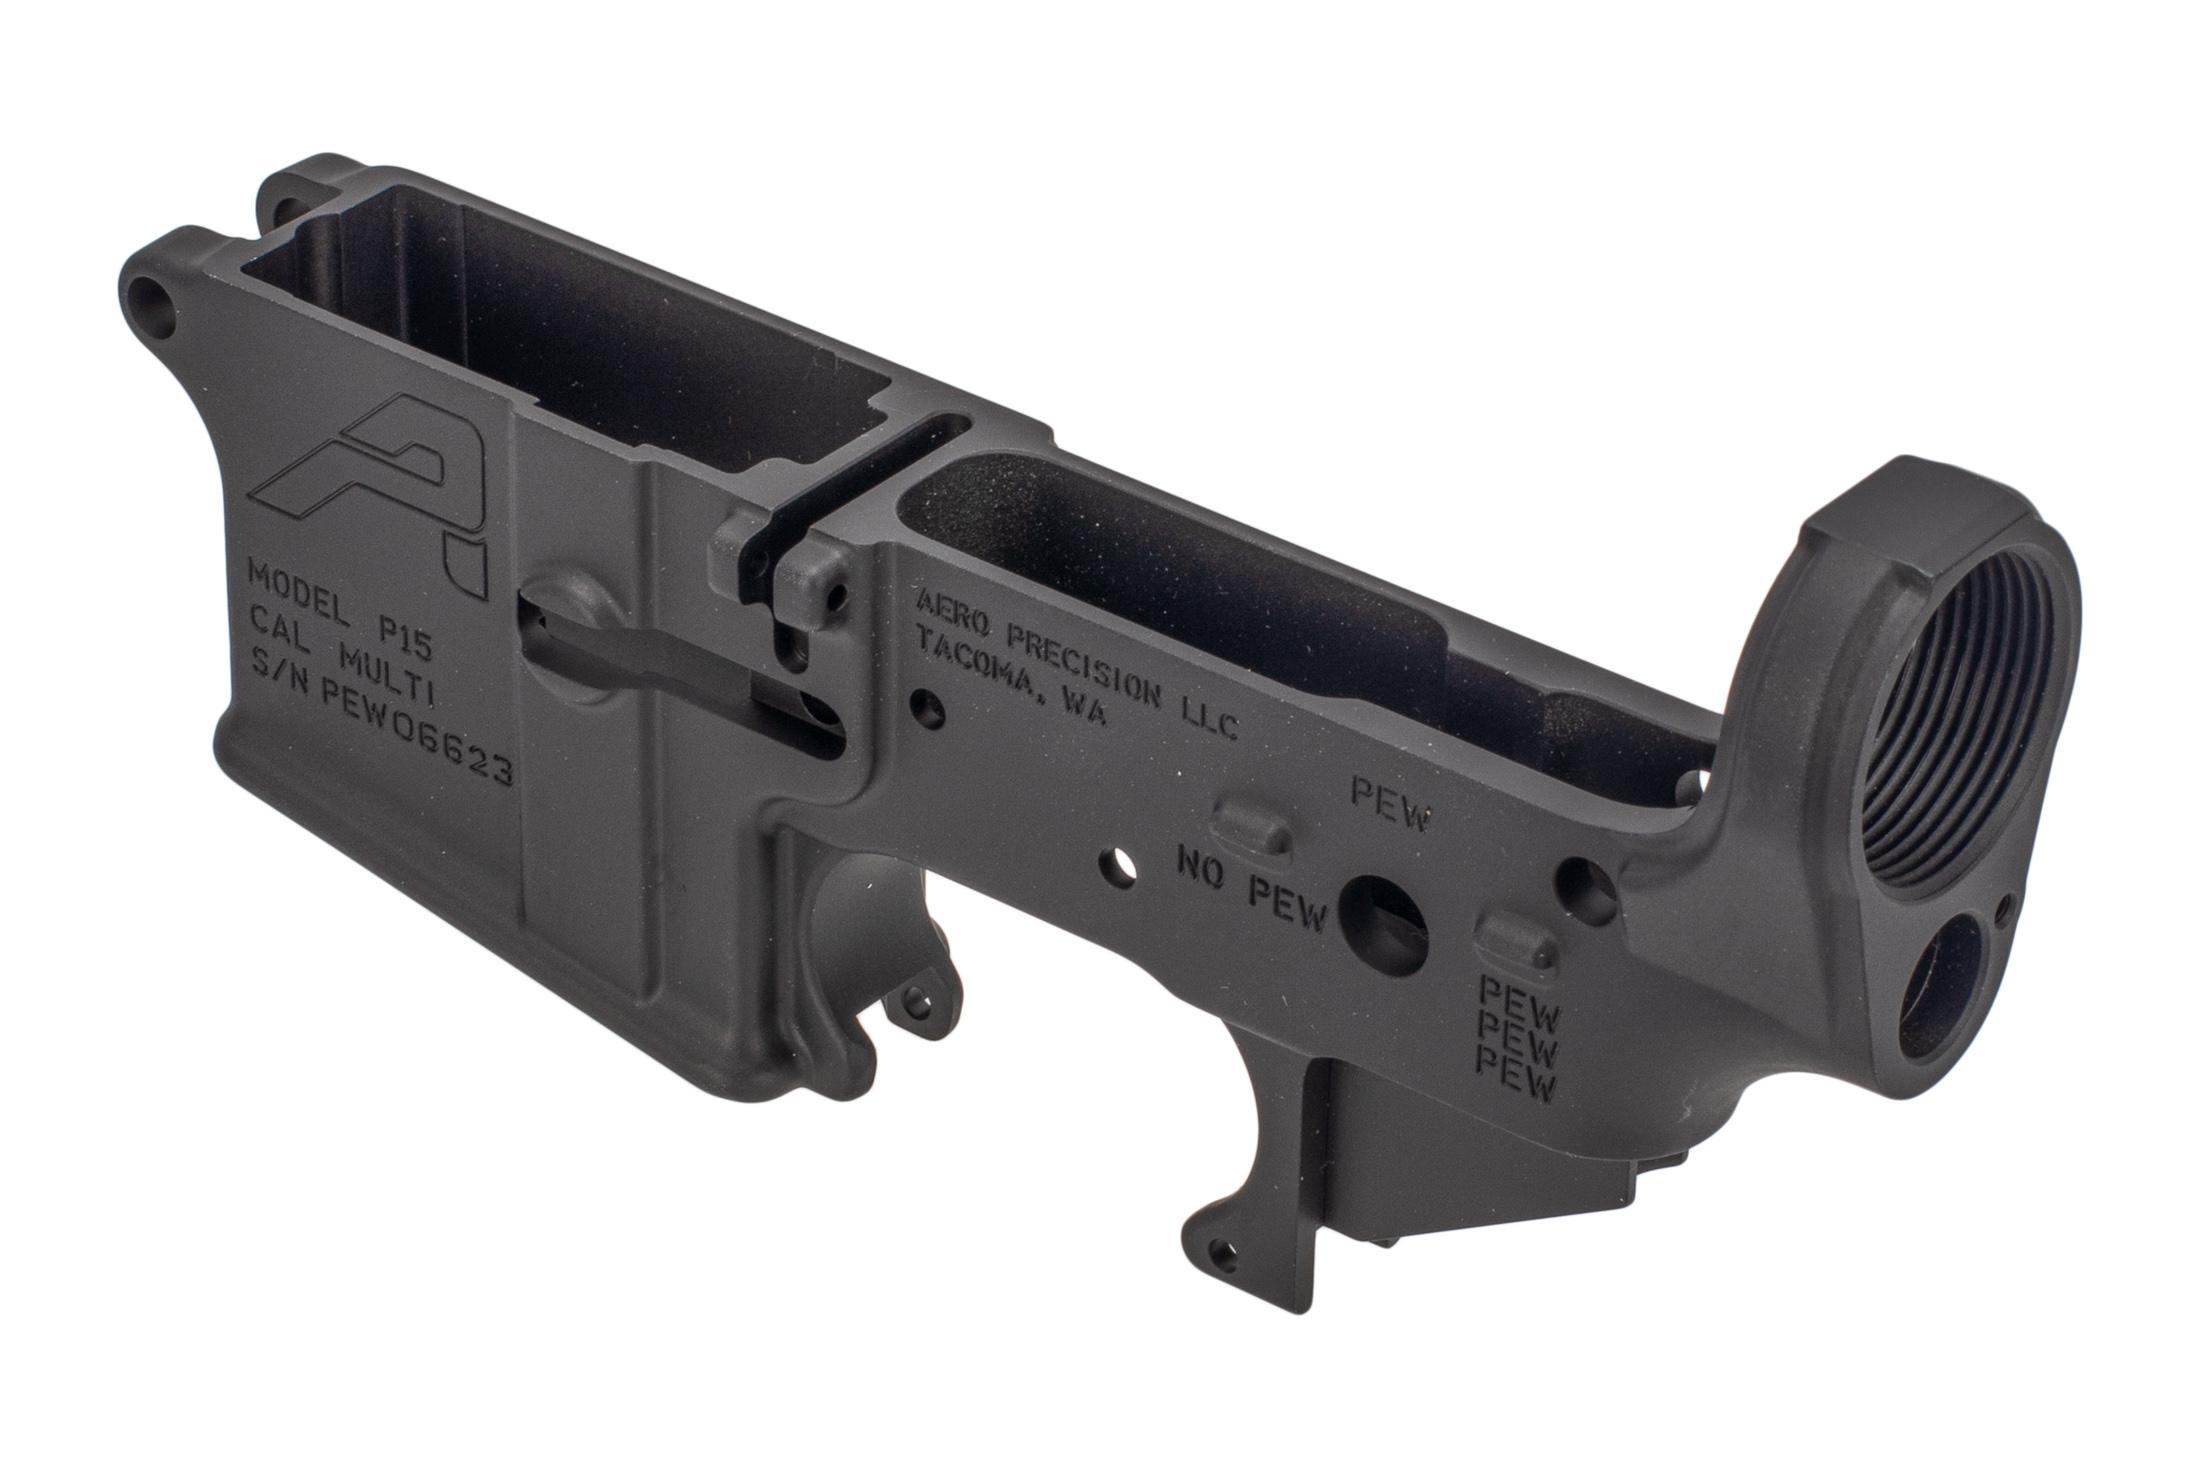 Aero Precision ar15 stripped lower receiver is a special edition with unique PEW engravings